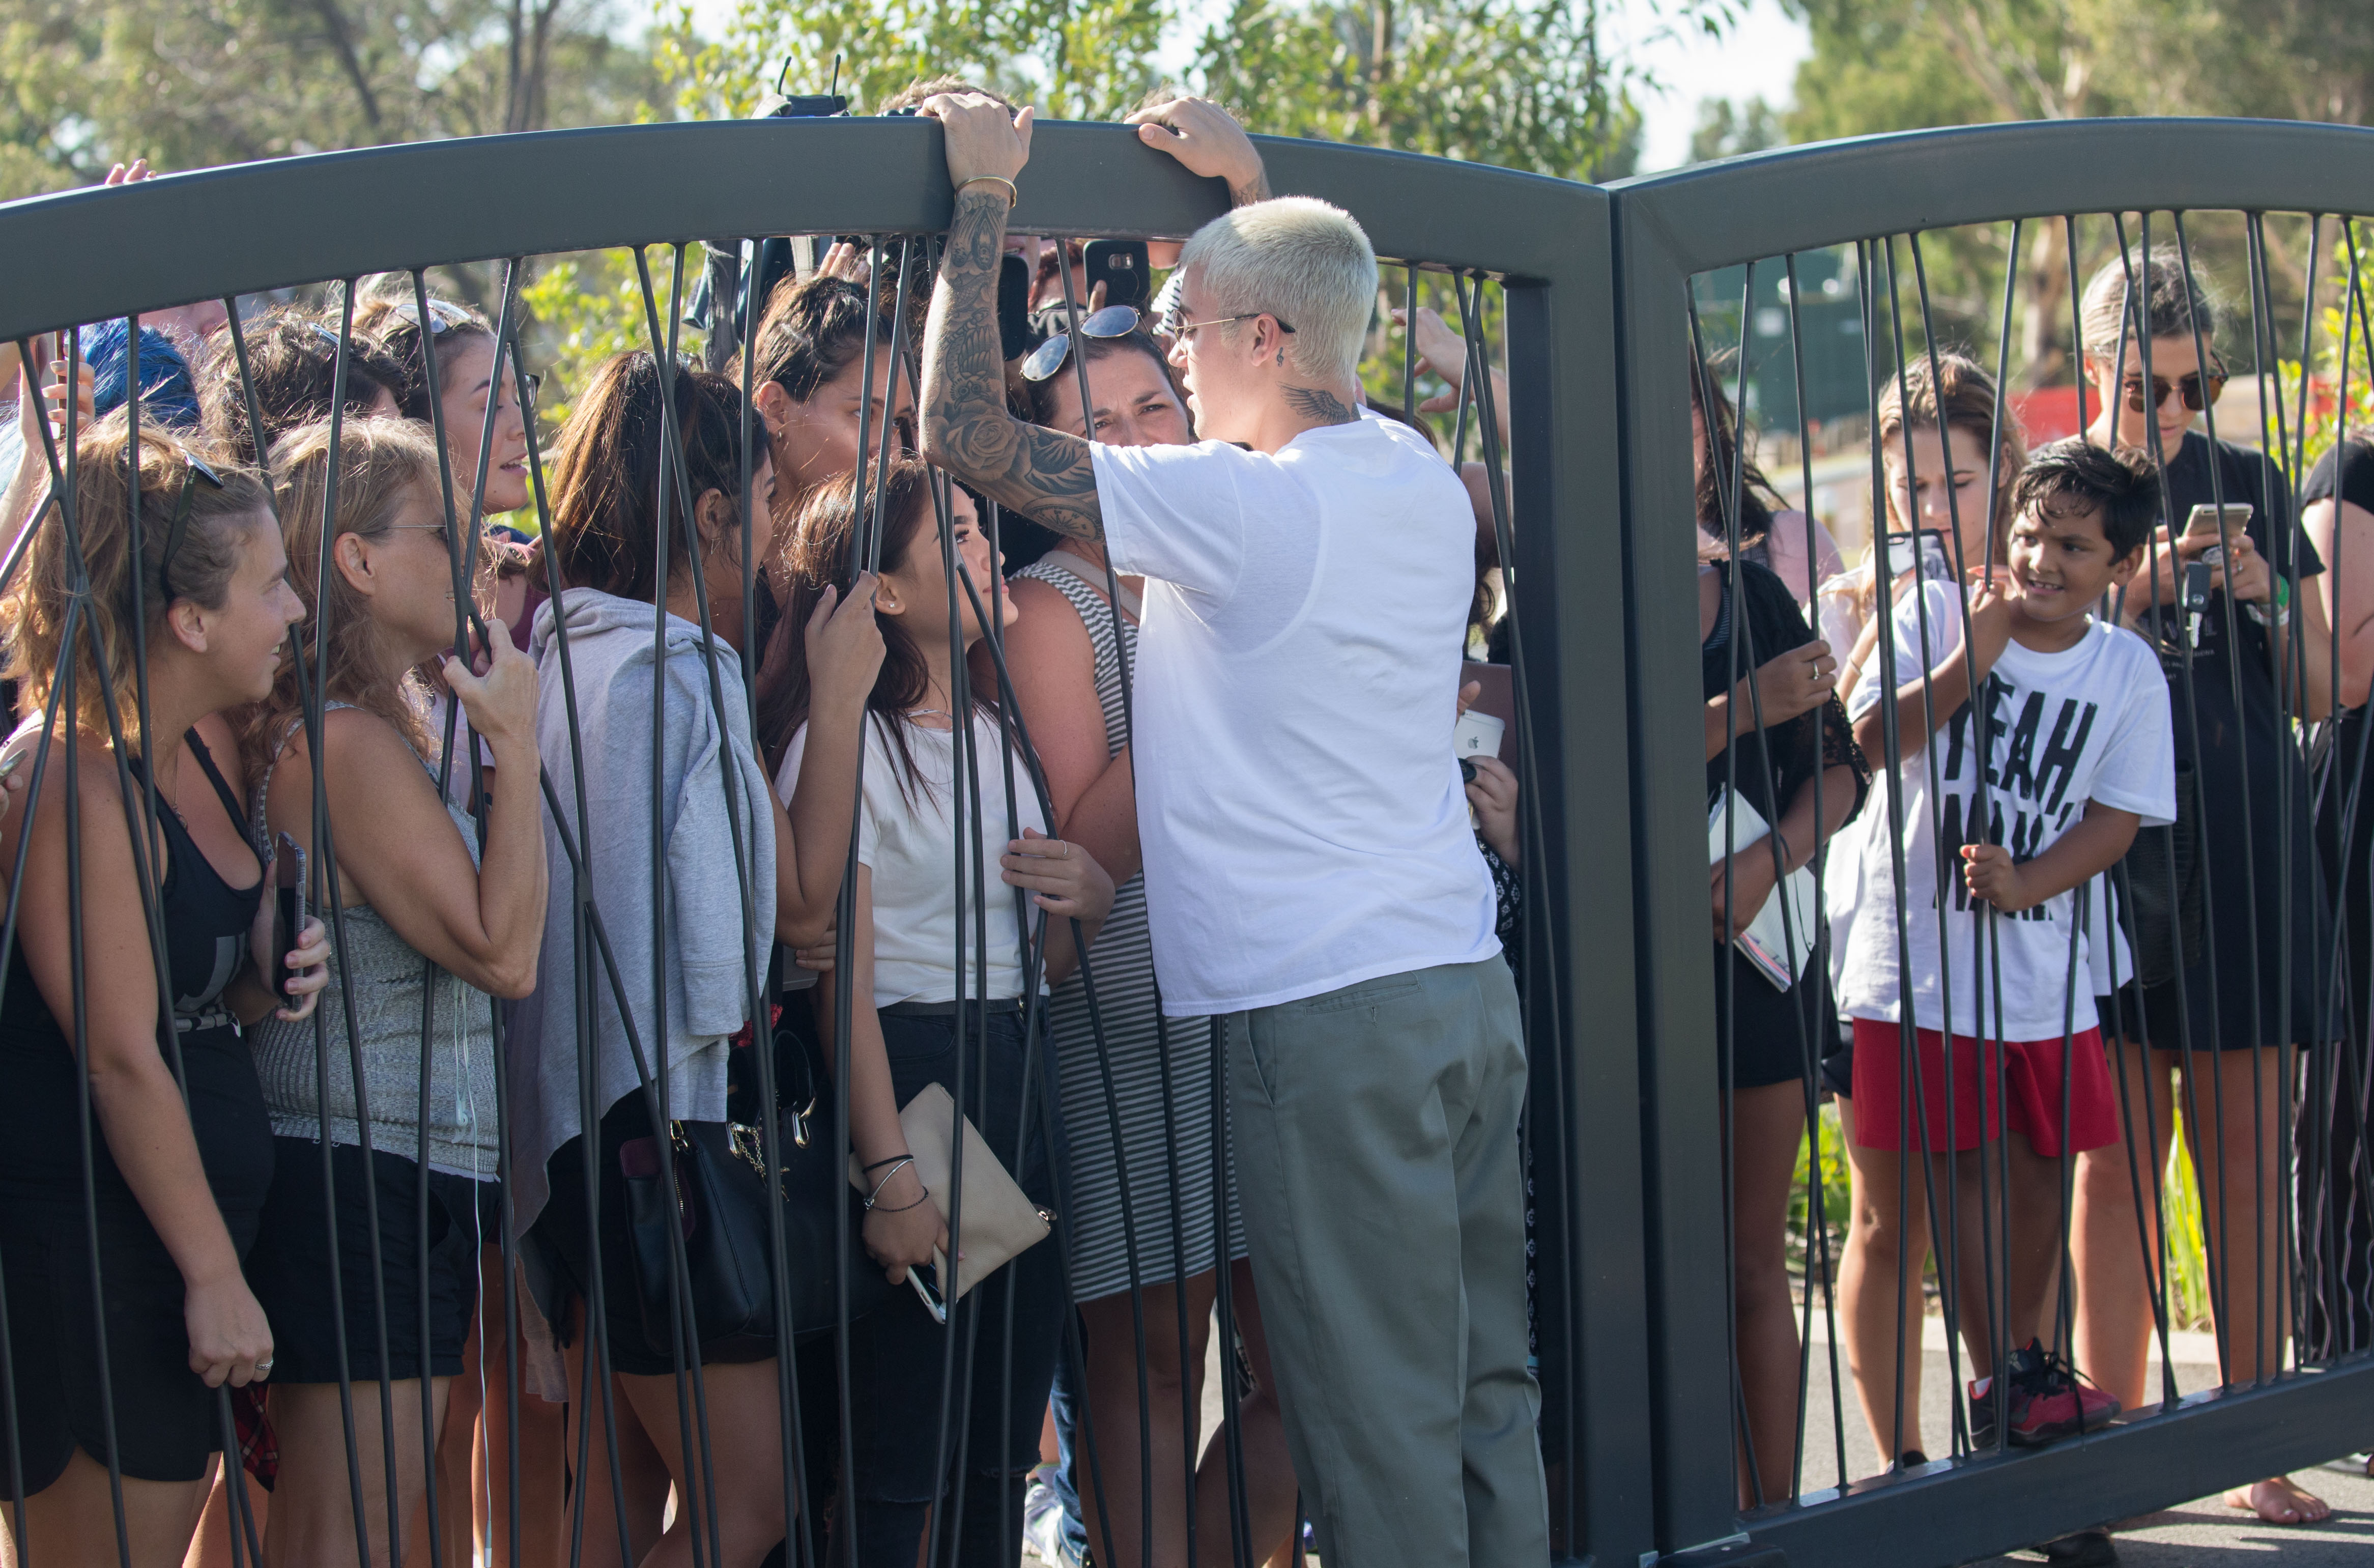 Justin Bieber Greets Hordes Of Girls Behind His Hotel Gate